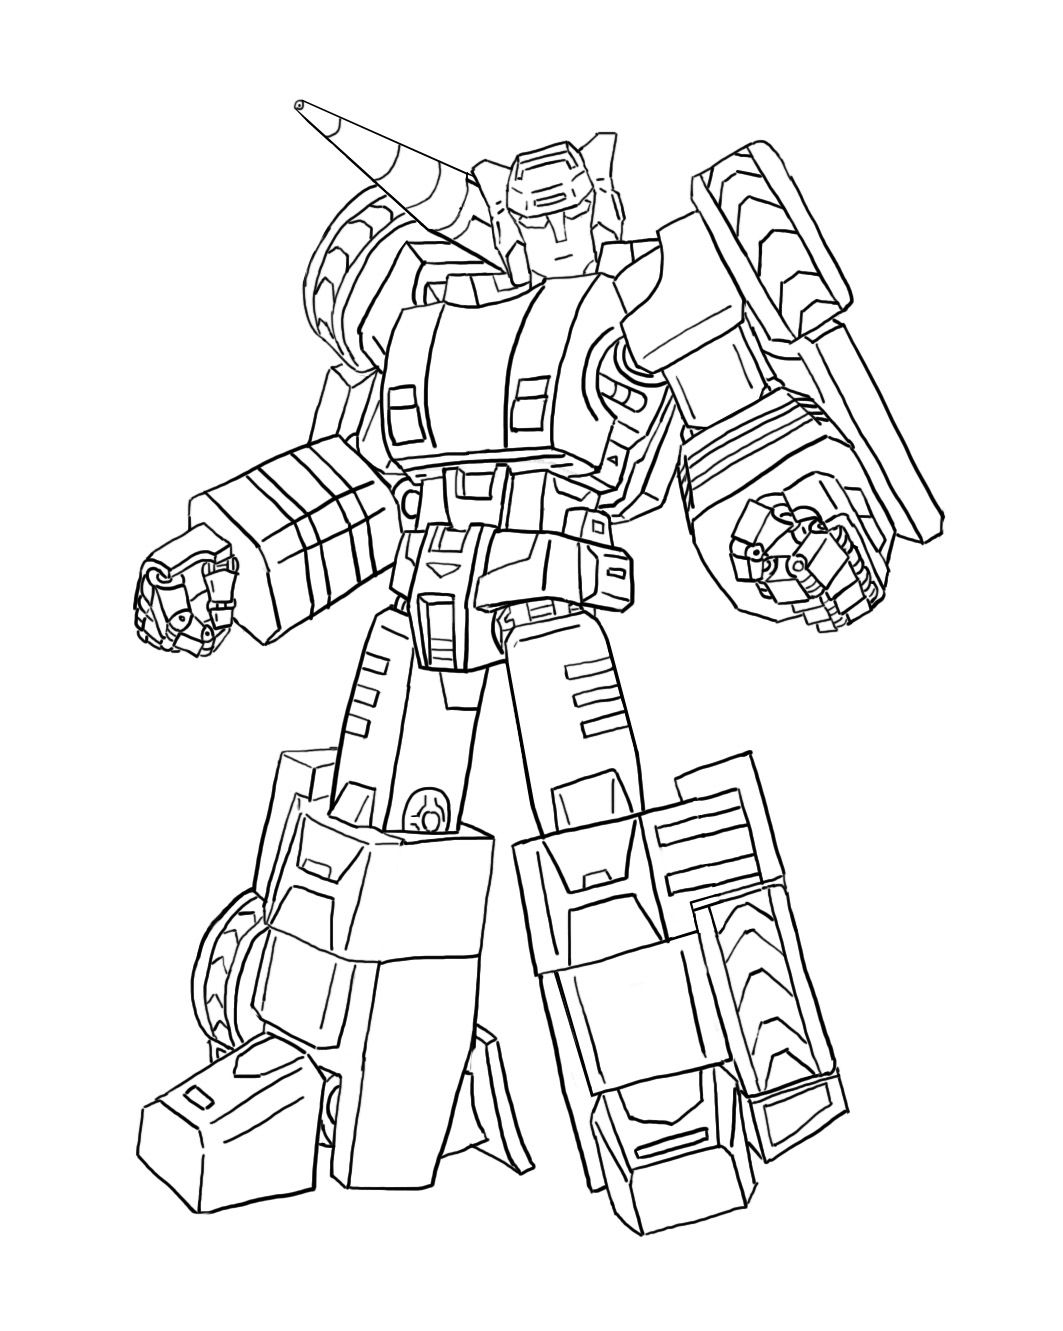 Coloring Transformers Sideswipe In 2020 Transformers Coloring Pages Toy Story Coloring Pages Coloring Pages